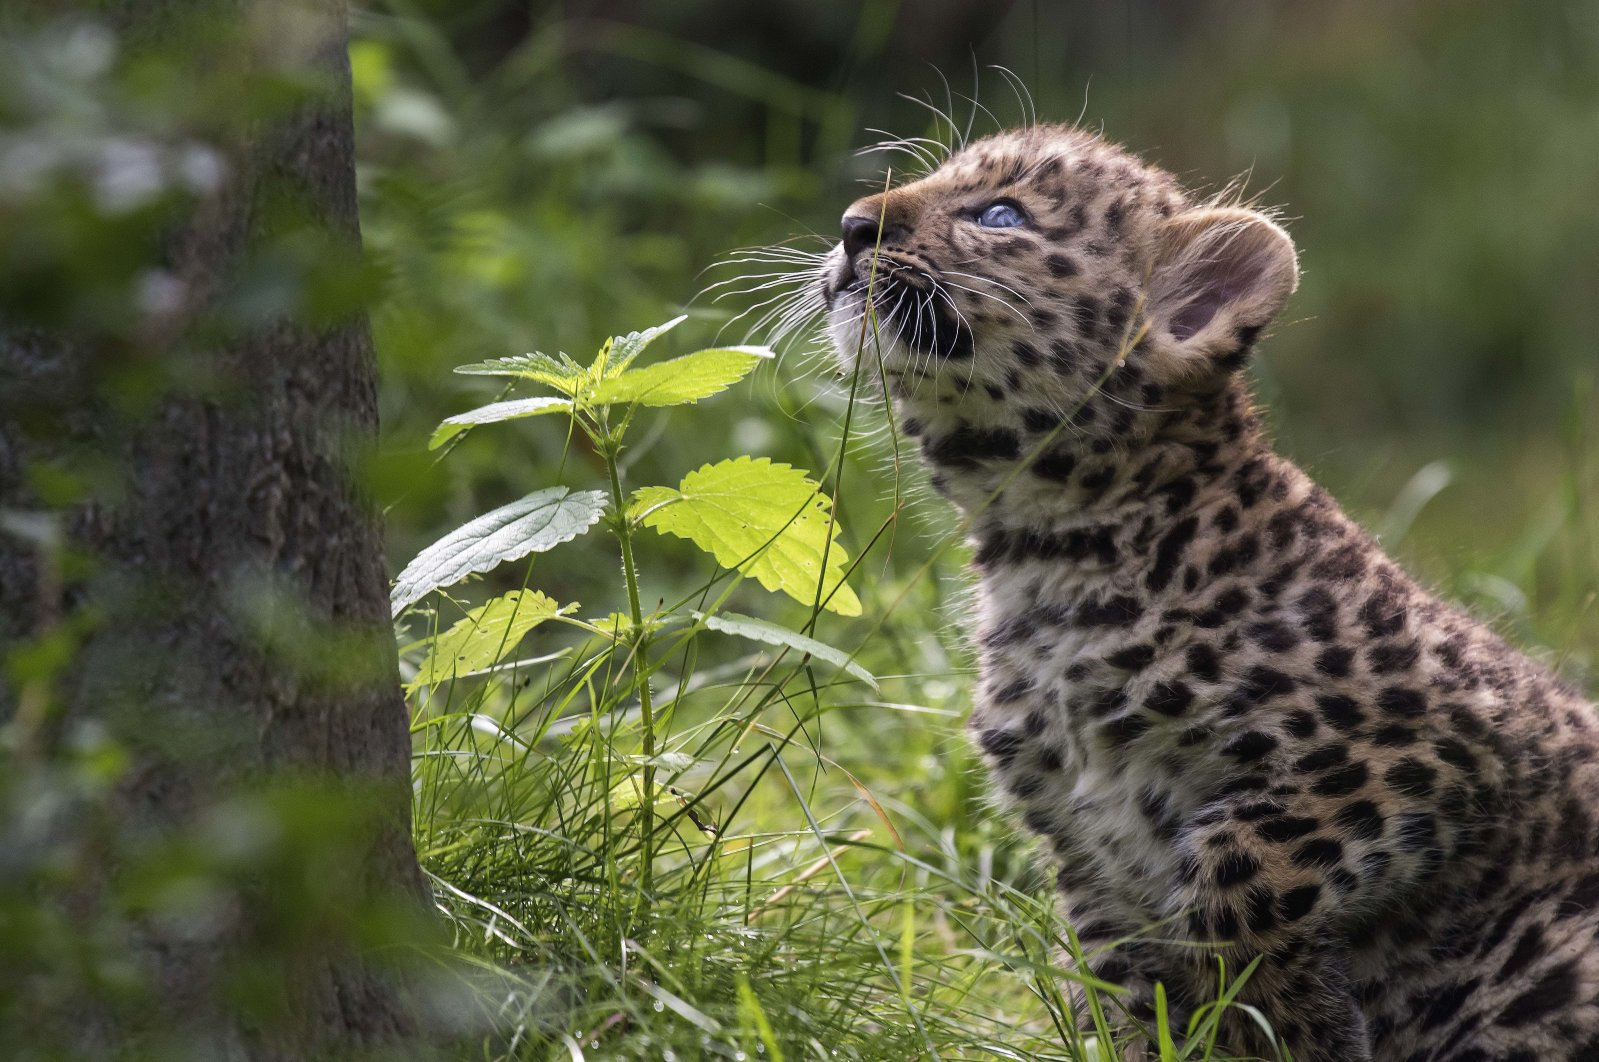 An Amur leopard cub, one of the many animal species at risk of extinction, in his enclosure in a zoo in Leipzig, Germany, June 27, 2017. (AP Photo)